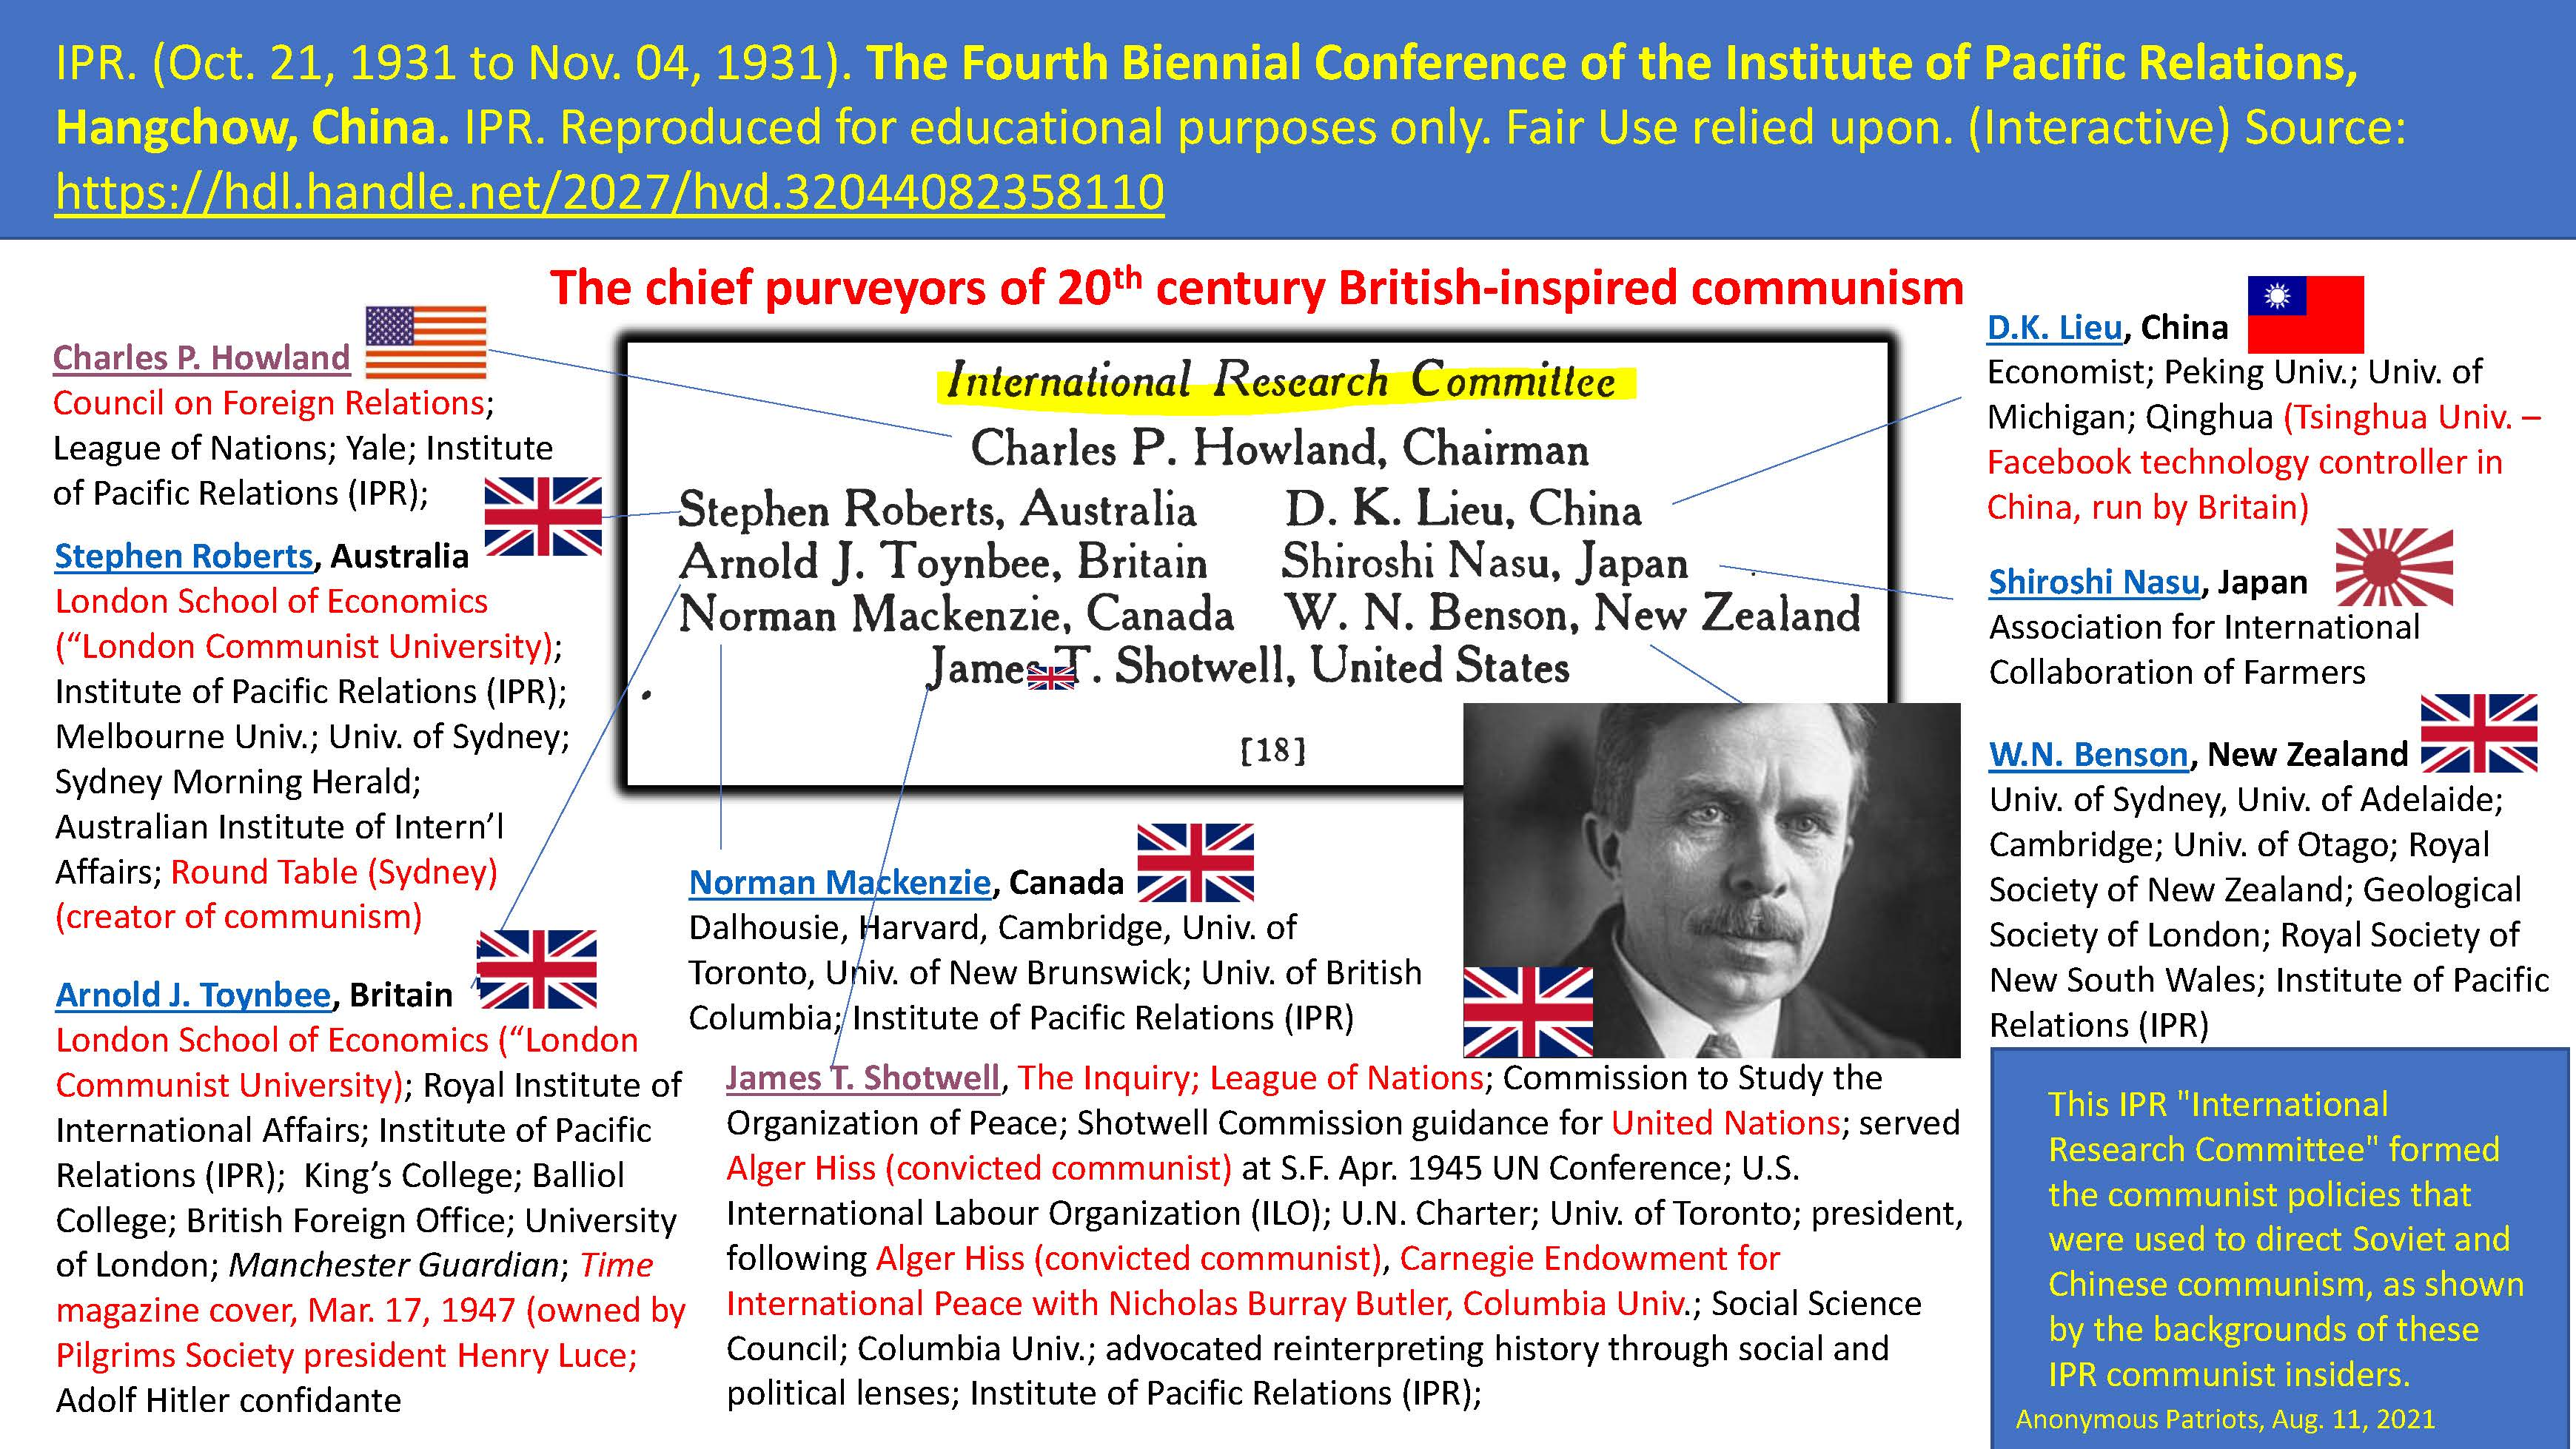 IPR. (Oct. 21, 1931 to Nov. 04, 1931). The Fourth Biennial Conference of the Institute of Pacific Relations (IPR), Hangchow, China. IPR.